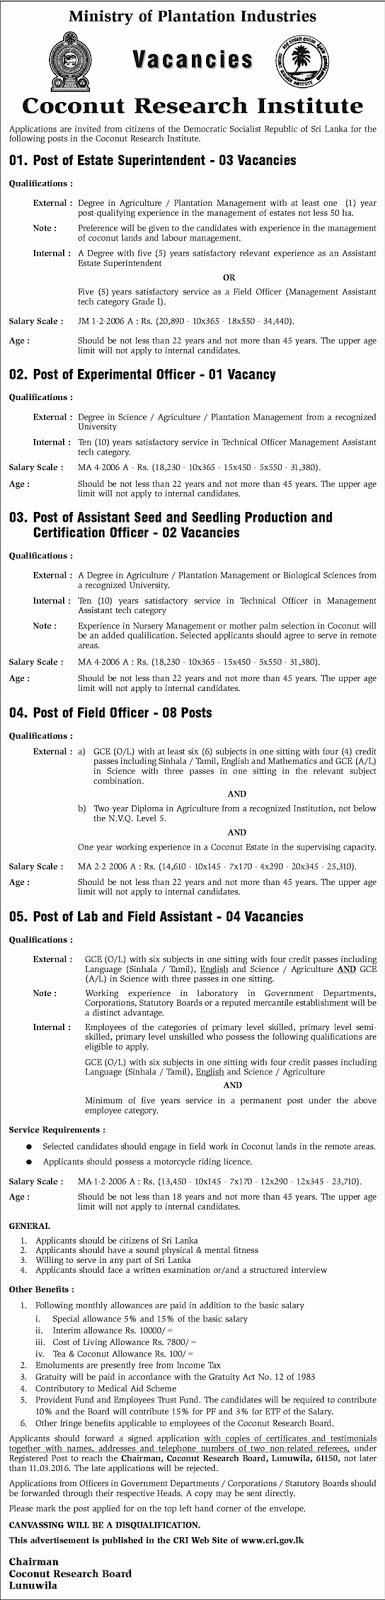 Vacancies - Estate Superintendent, Experimental Officer, Assistant Seed and Seedling Production and Certification officer, Field Officer, Lab & Field Assistant – Lab and Field Assistant -Coconut Research Institute - Ministry of Plantation Industries